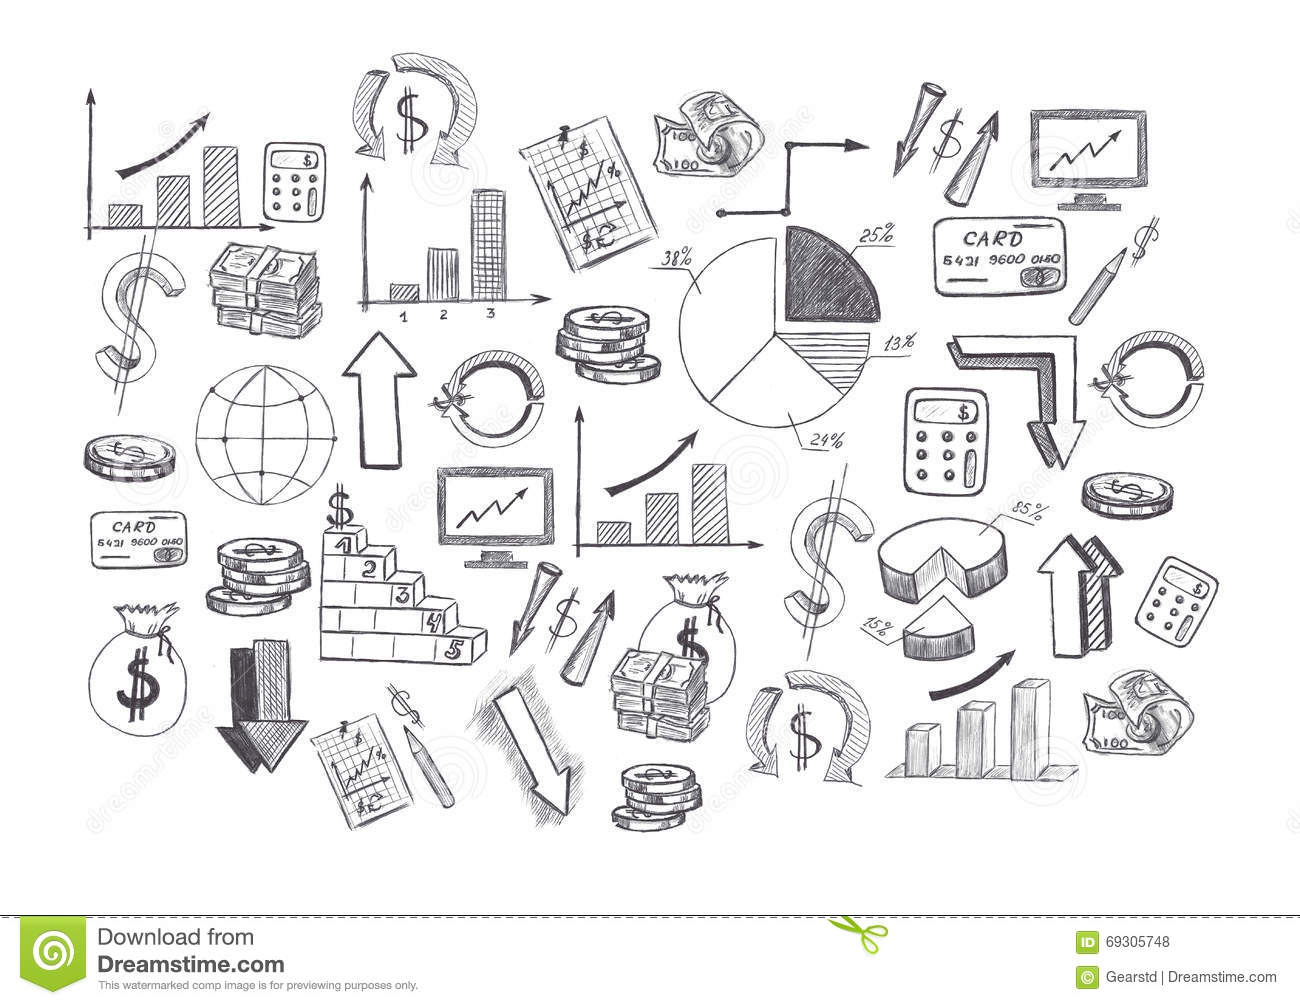 sketch of hand drawn graphics pictures and diagrams related to rh dreamstime com hand drawn diagram tool online hand drawing diagram